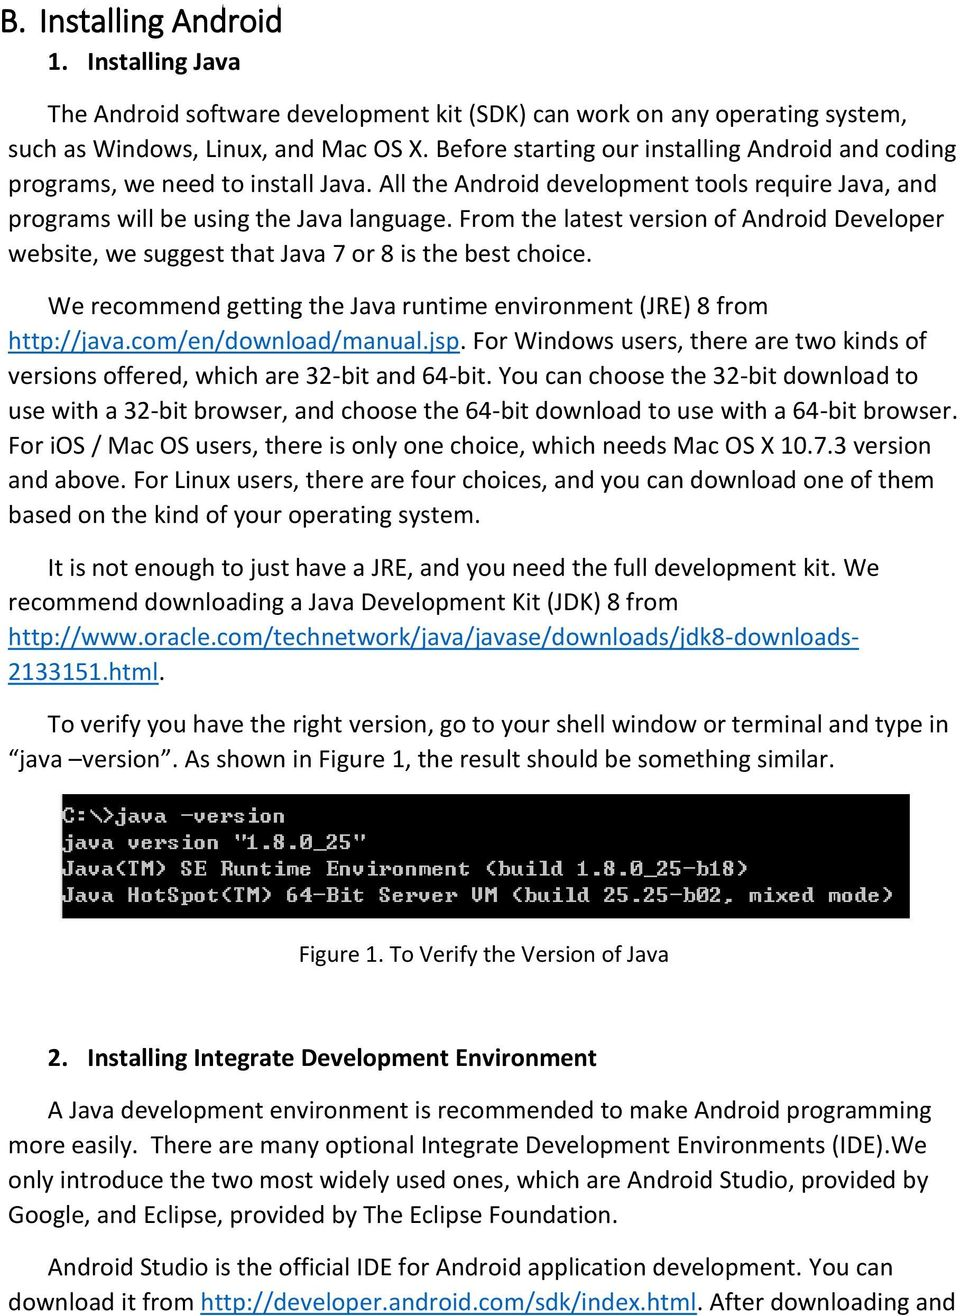 Android Mobile App Building Tutorial - PDF